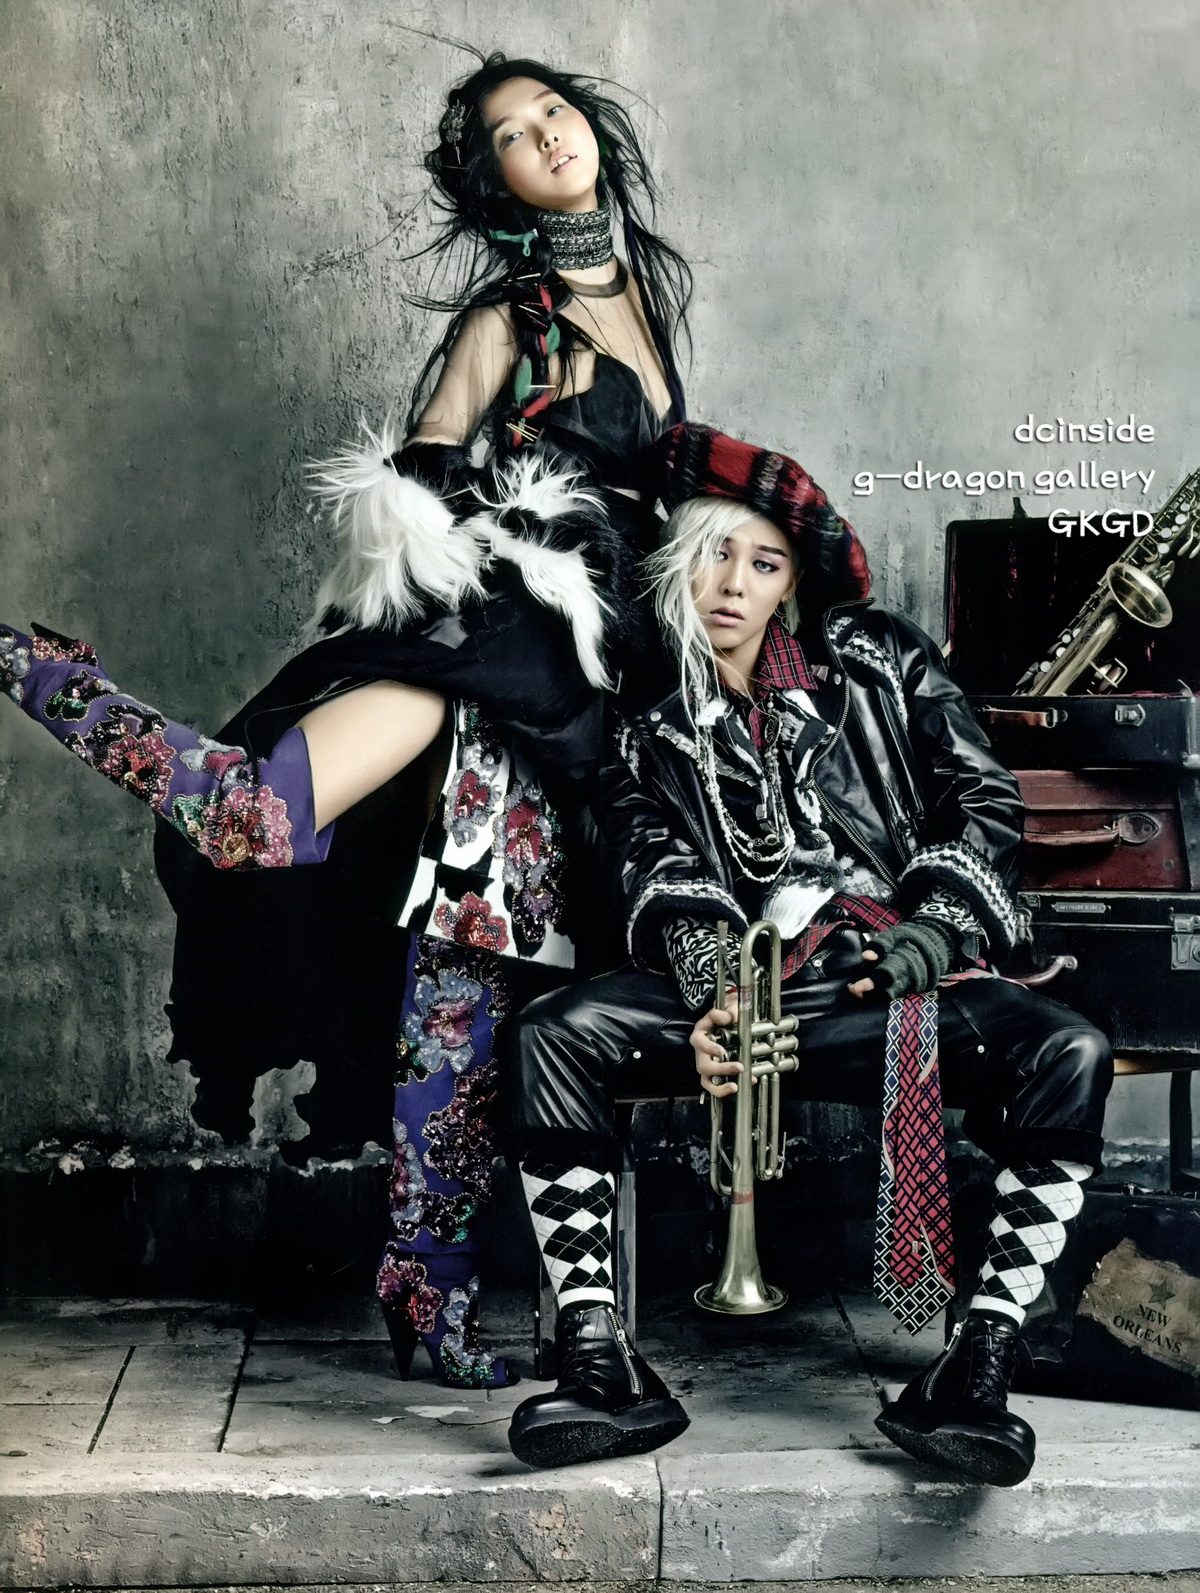 G Dragon 2013 Photoshoot G-Dragon dla Vogue Kor...